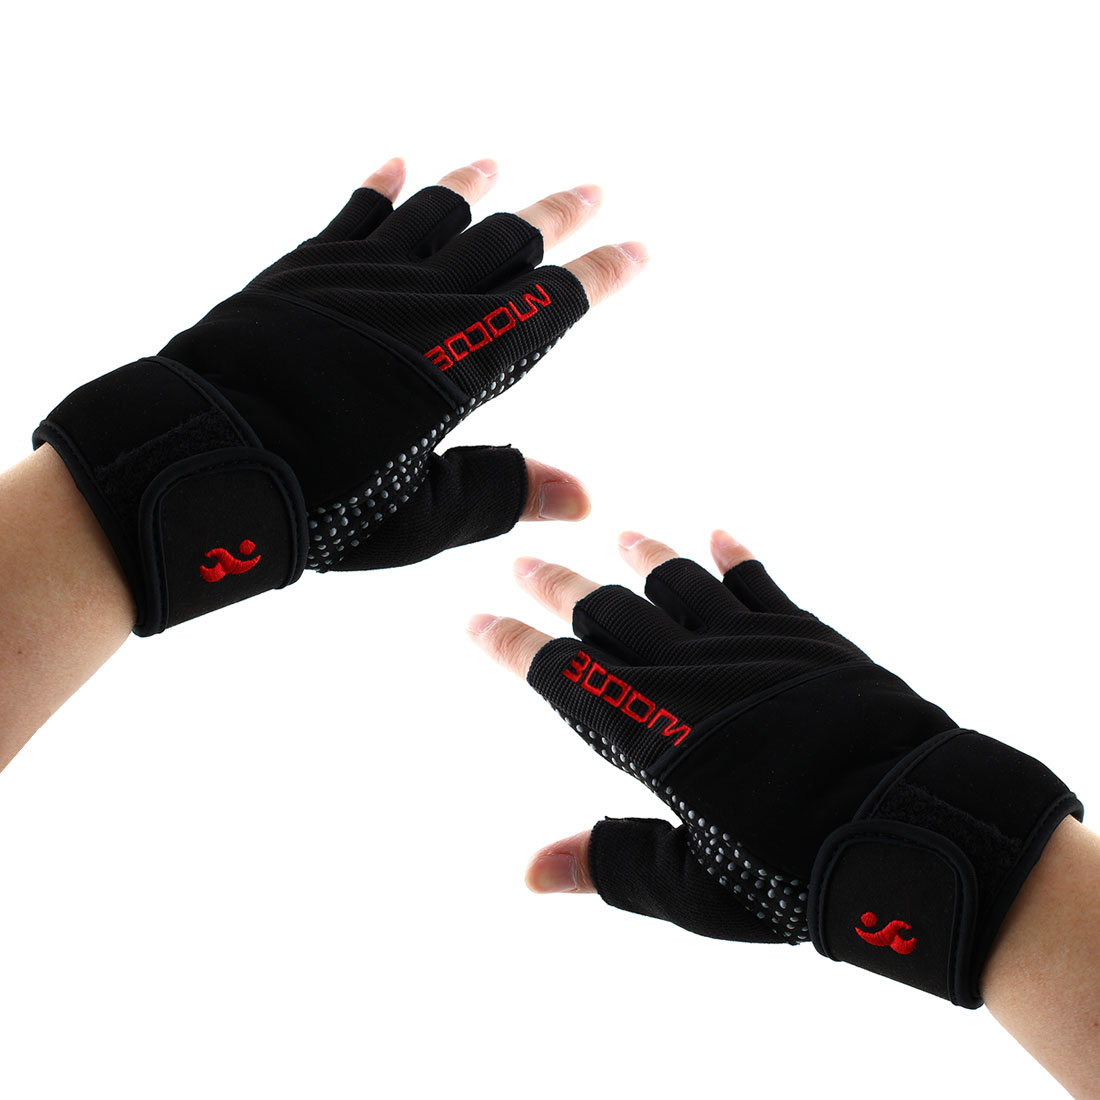 Boodun Authorized Sports Weight Lifting Training Gym Workout Fitness Embroidery Adjustable Anti Slip Half Finger Gloves Red Size M Pair